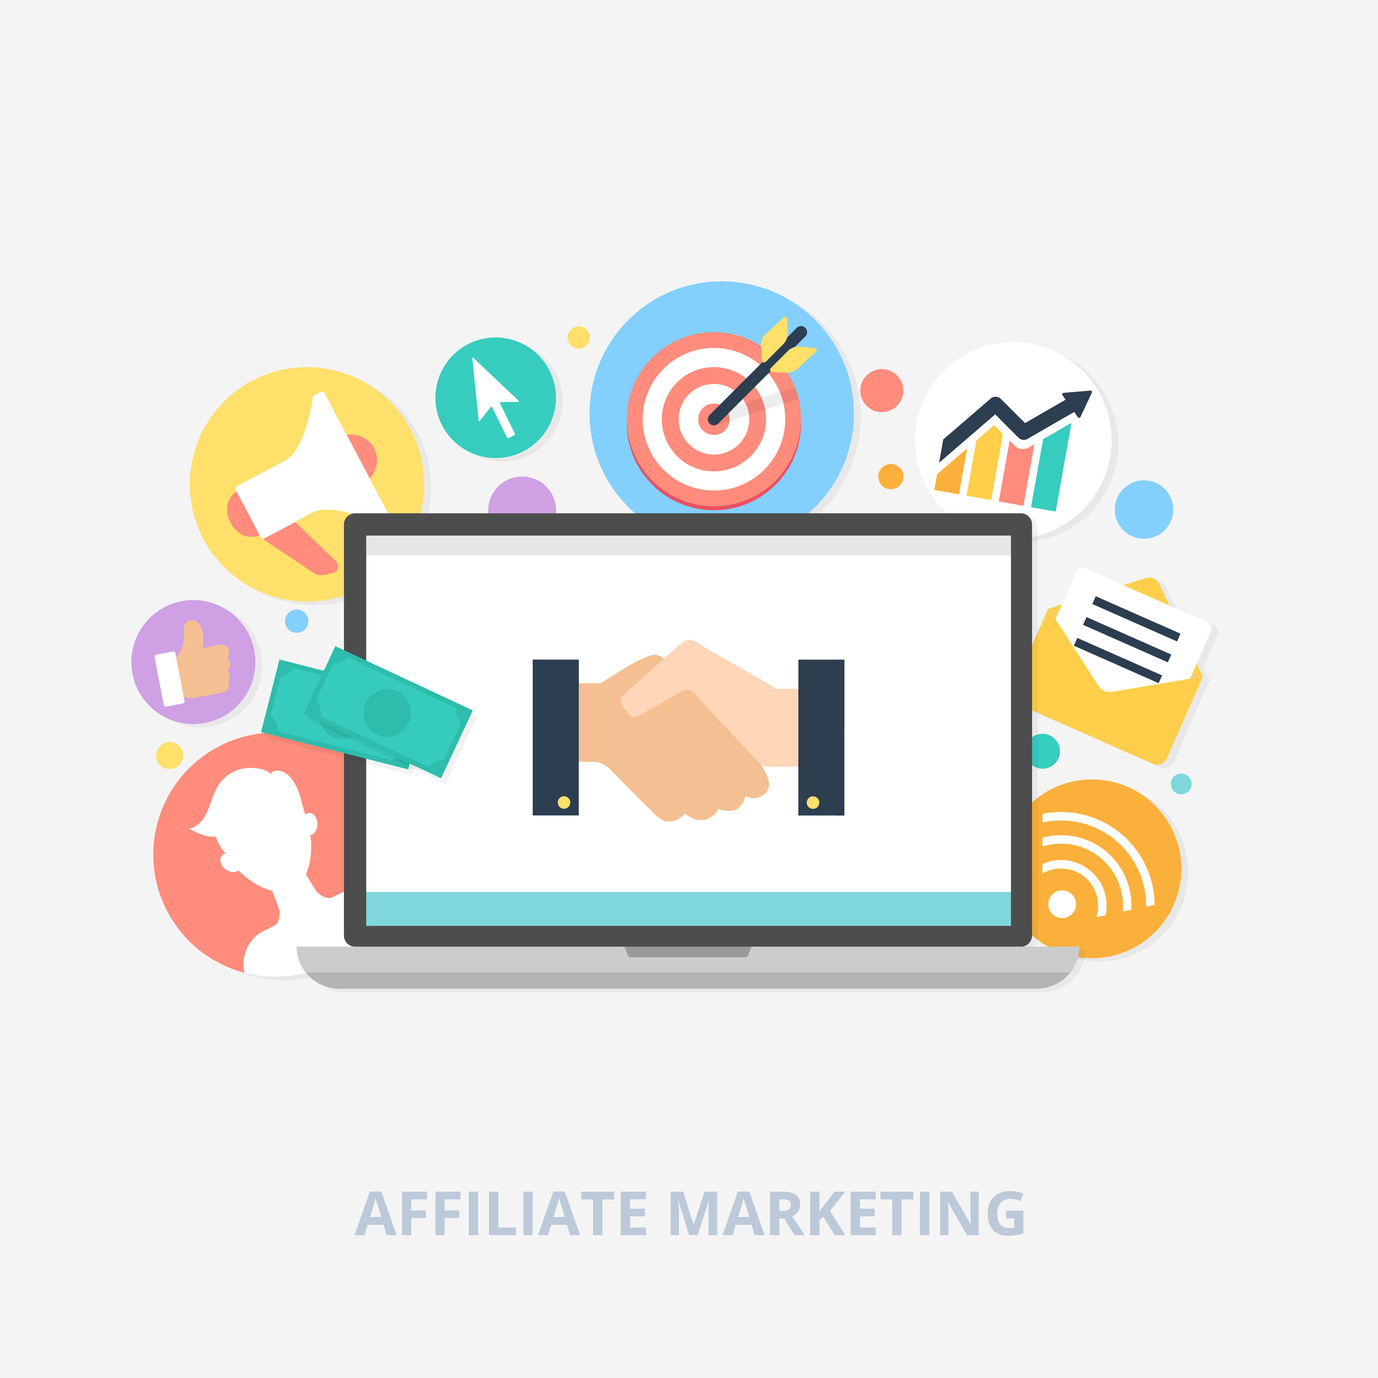 How to launch an affiliate marketing business